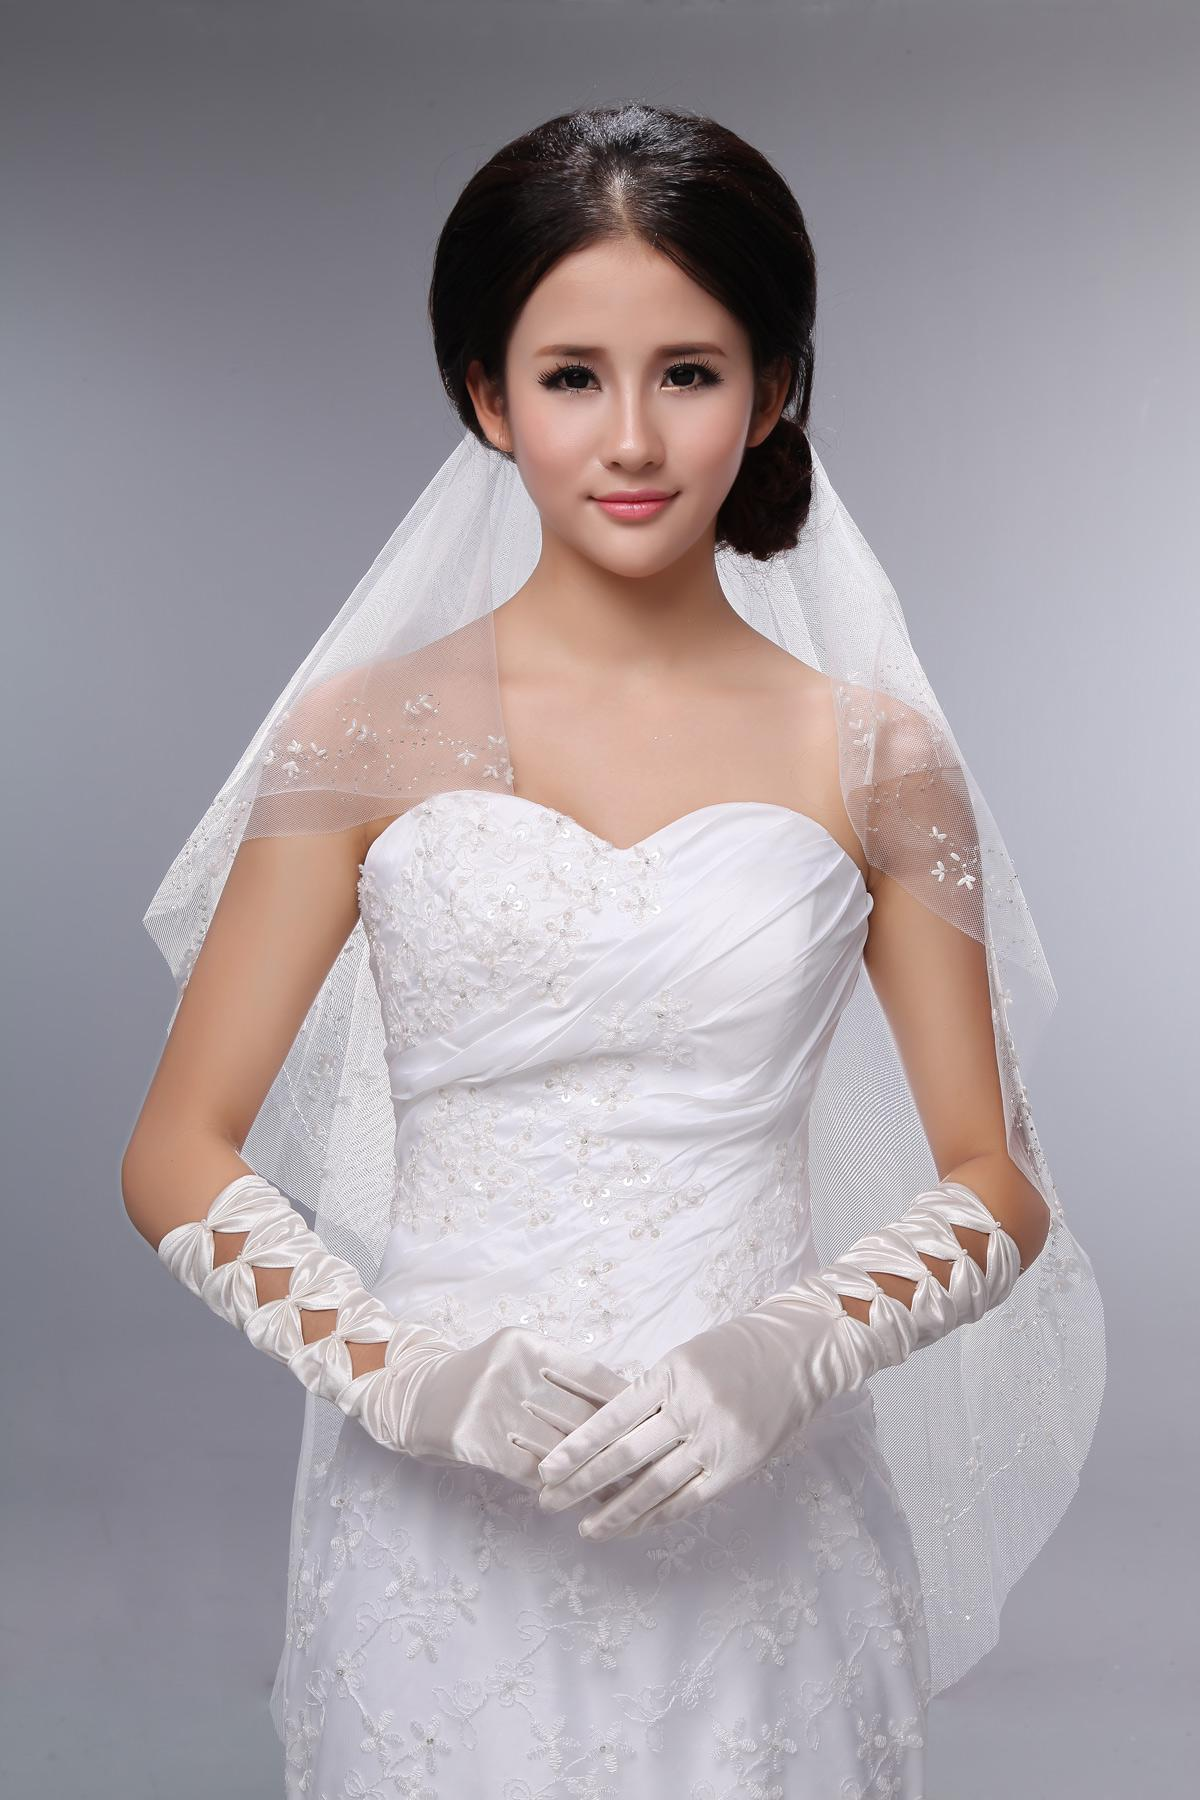 Wedding Gowns With Gloves – Skyranreborn